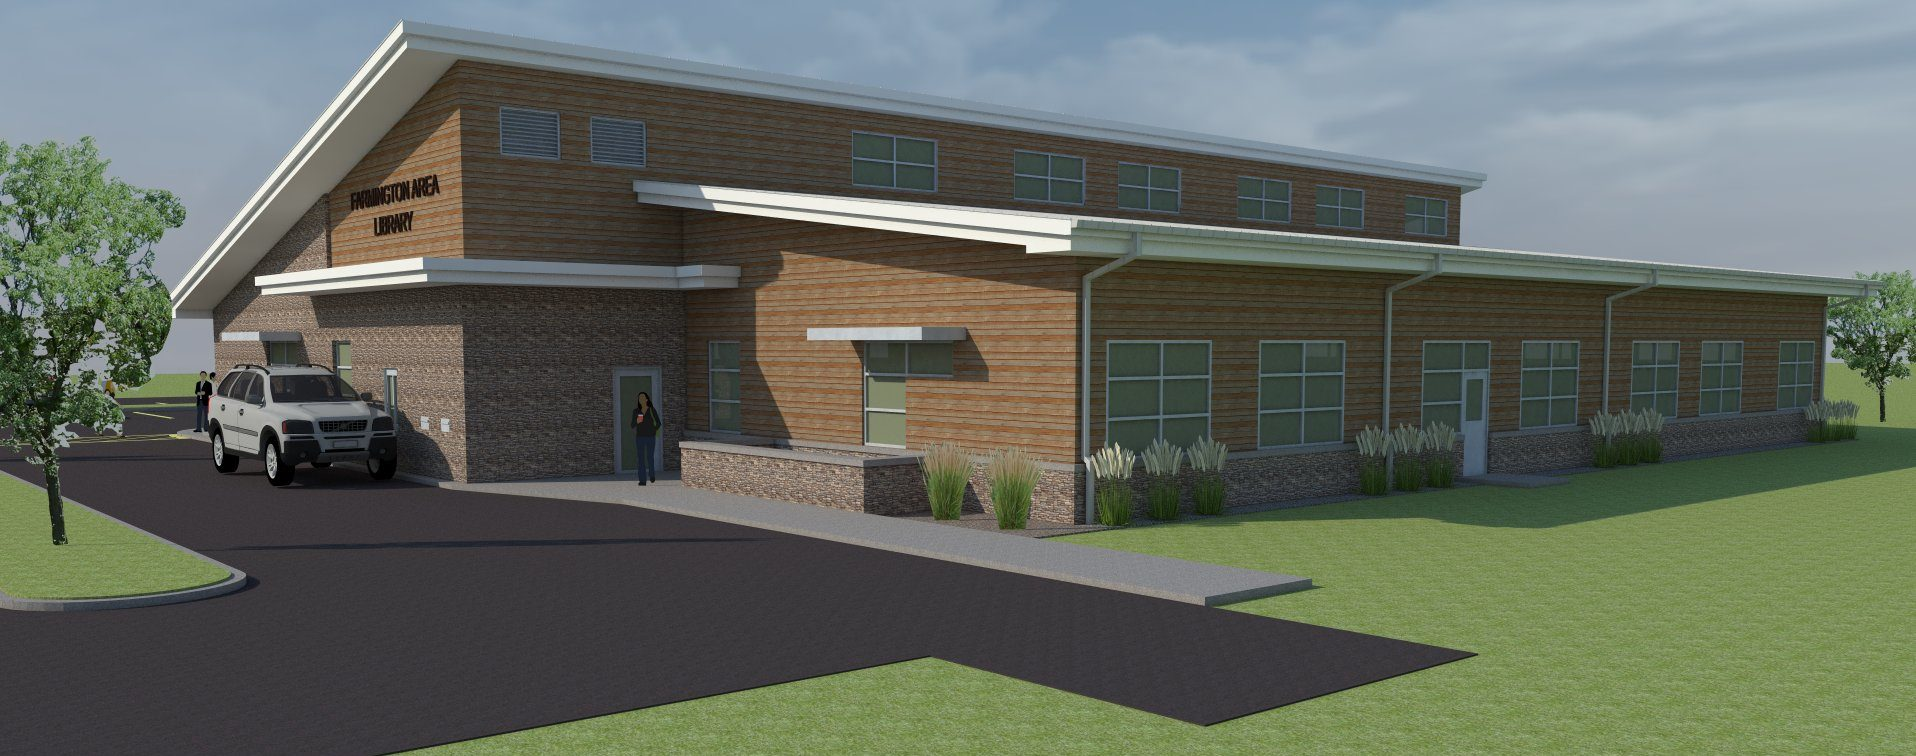 Architectural rendering of the Farmington Area Public Library. Image courtesy Farmington Area Public Library